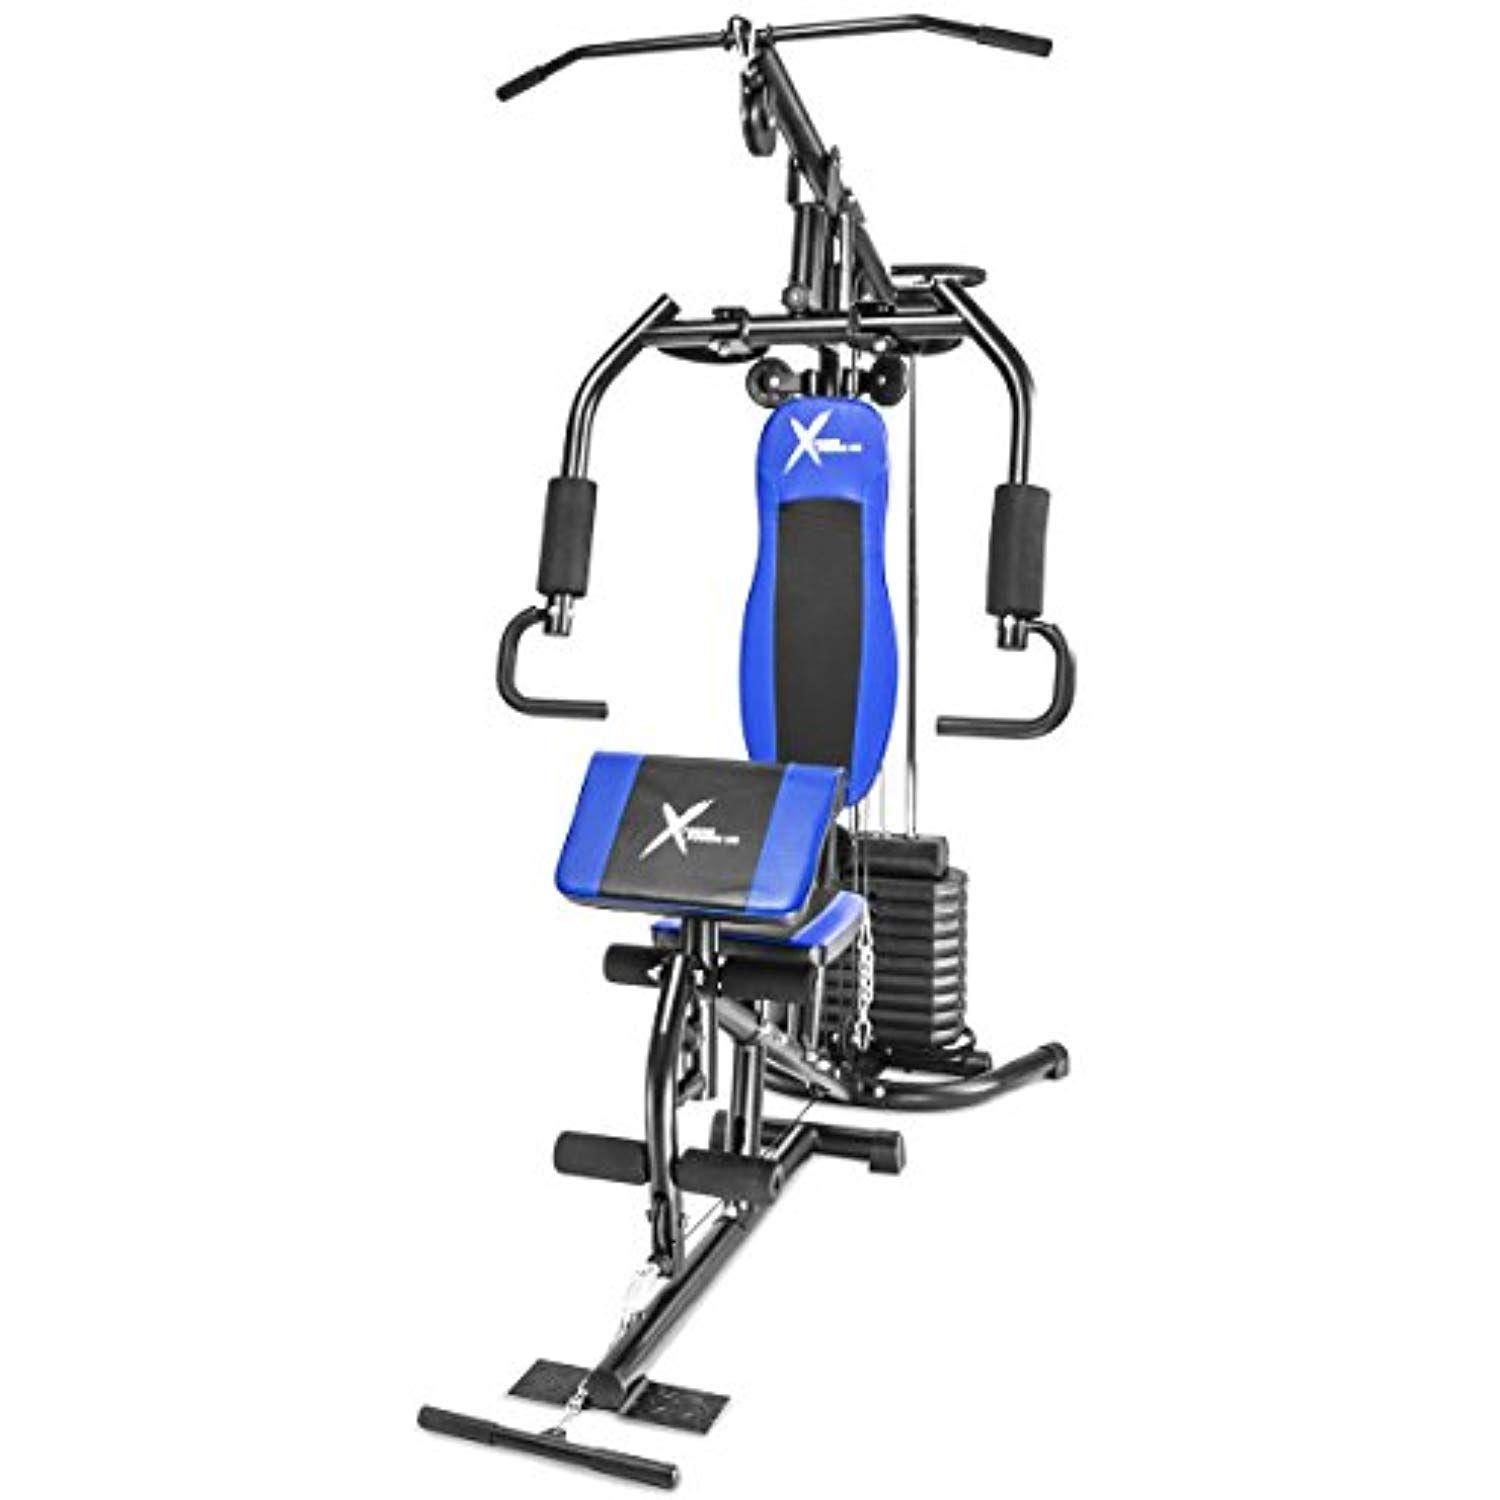 Pin On Exercise Fitness Home Gyms